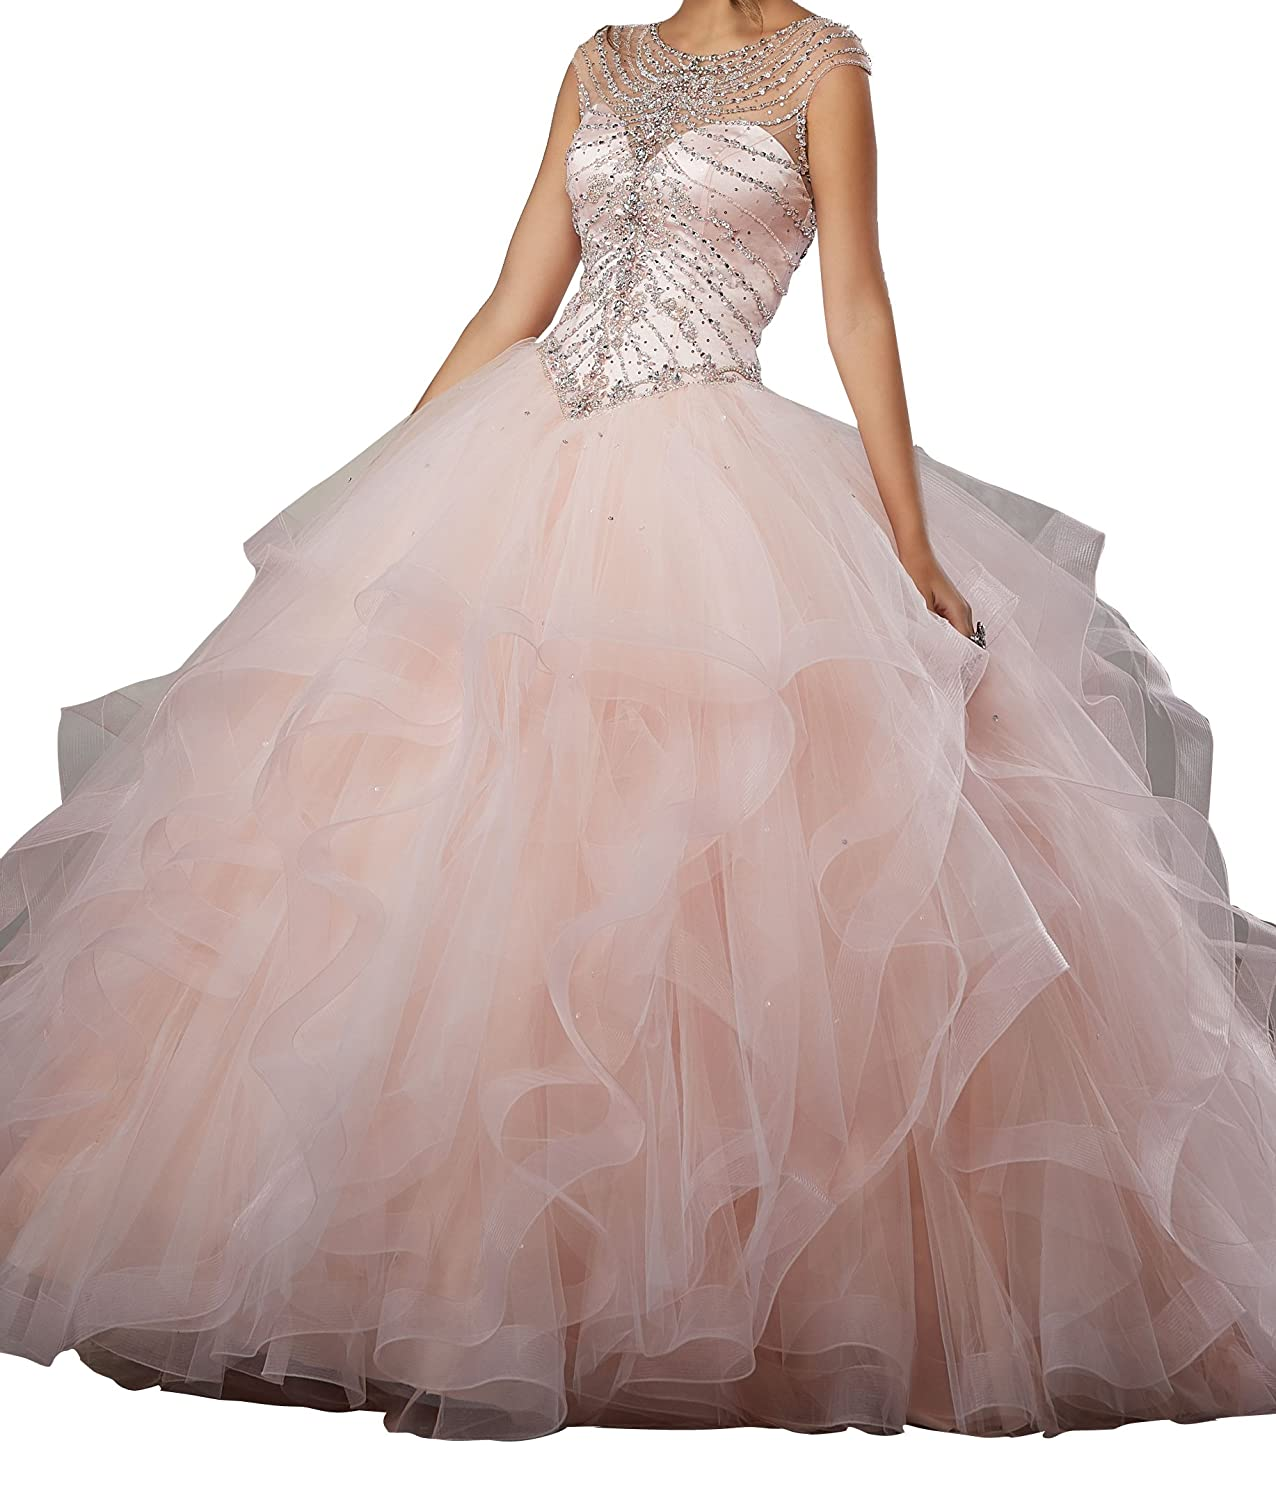 d4d3e308bd DengFeng Women s Illusion Neckline Beaded Rhinestones Prom Party Sweet 15  Quinceanera Dresses at Amazon Women s Clothing store